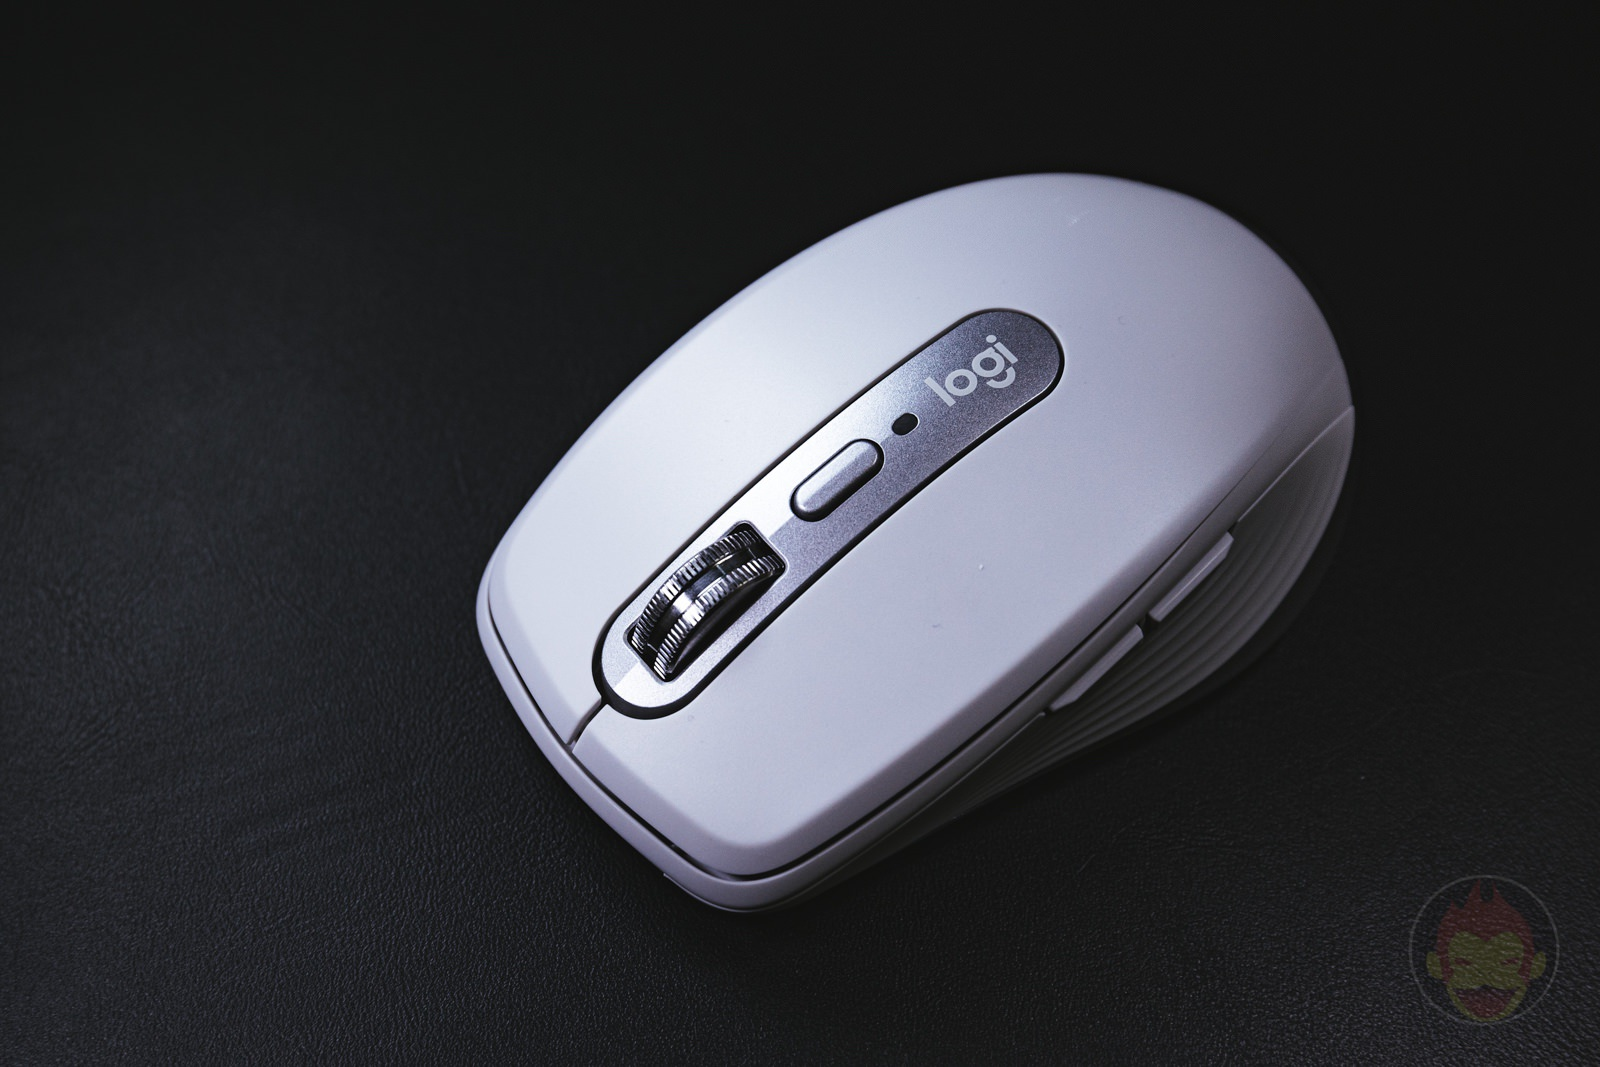 Logicool MX Anywhere 3 Mouse Review 02